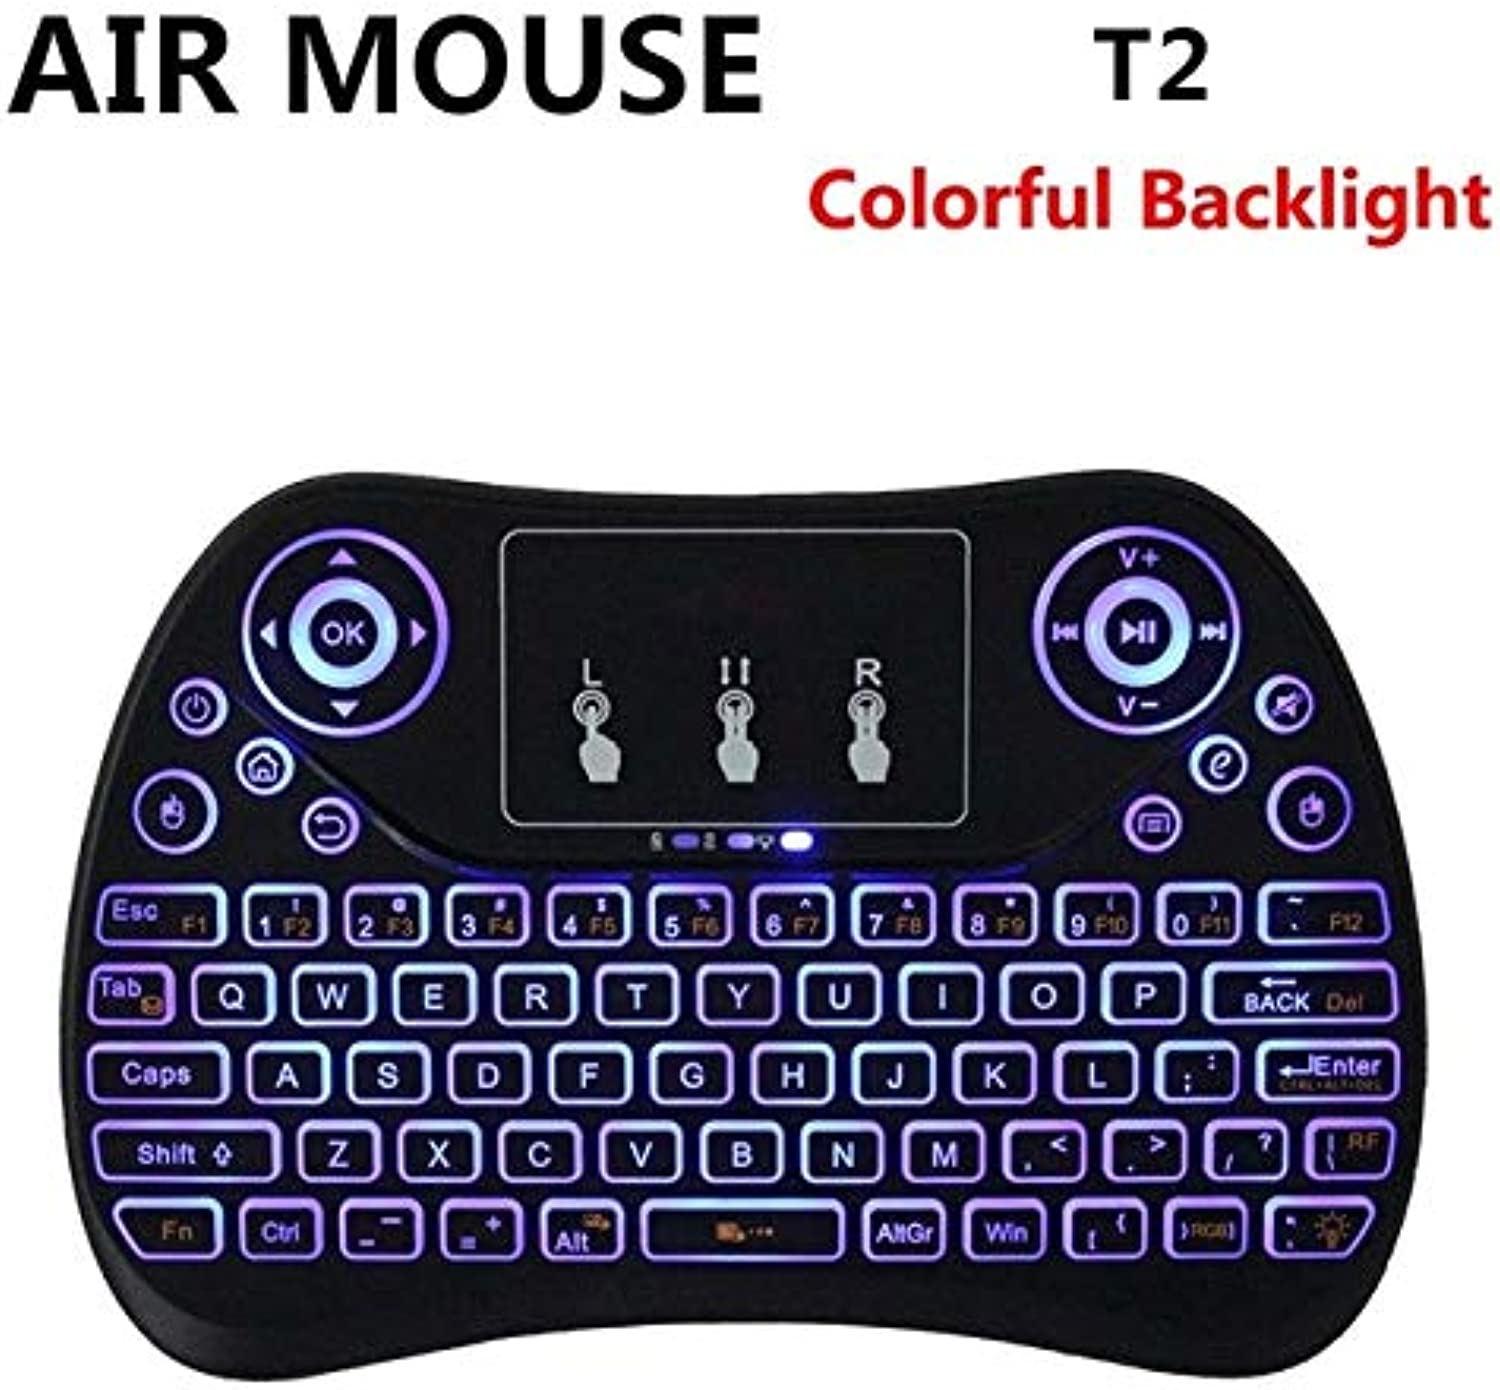 Calvas 7 color Backlight Mini Wireless Keyboard T2 Remote Control Fly Air Mouse Flat Touchpad Better Than i8 MX3 for Mini PC Mac Linux  (color  colorful Backlight)